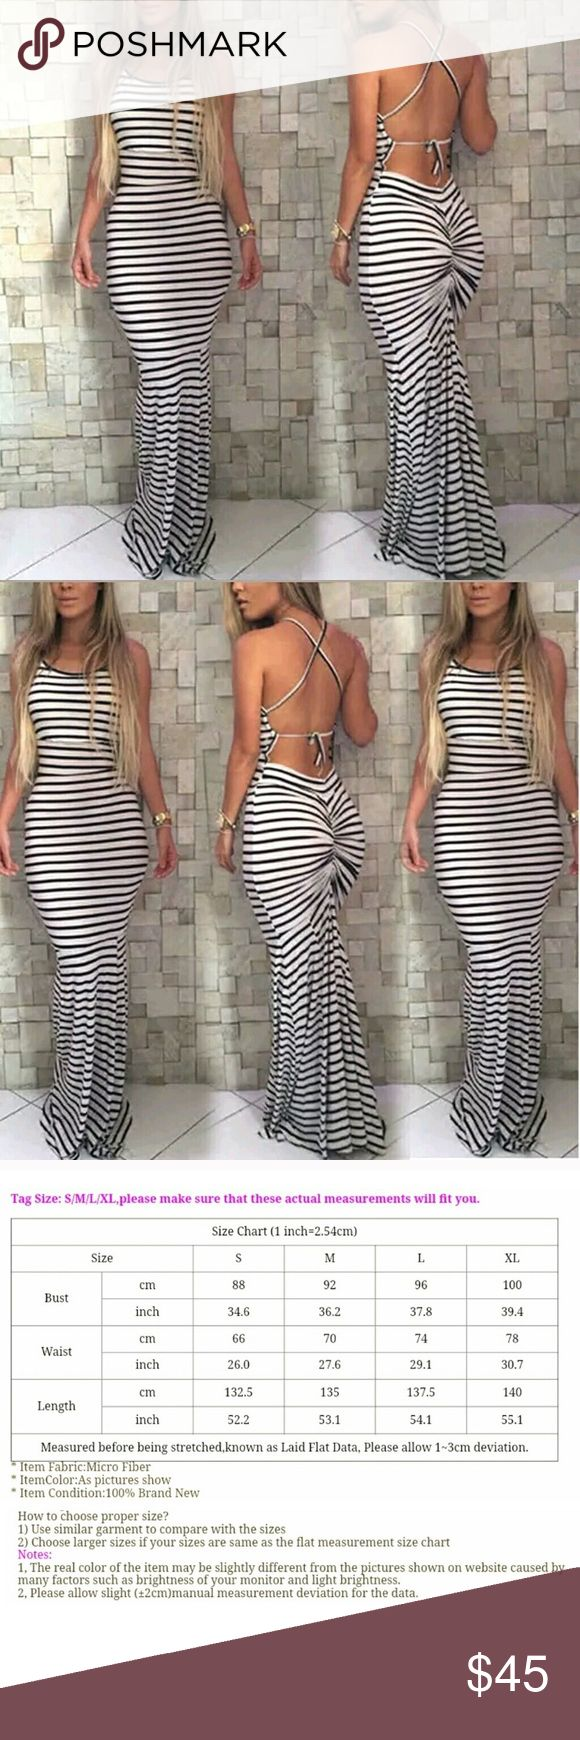 Striped Backless Summer Dress This black and white striped backless body con summer dress is cute and sexy. Show off your curves with this beautiful dress that falls down to your feet and crosses around your back  It's lightweight and stretchy with tightness in the right areas. Wear it at the beach, for a party, or just casual wear   Features: •Body con style •Sleeveless •Long •Sewn back •Chest strings are adjustable Dresses Maxi